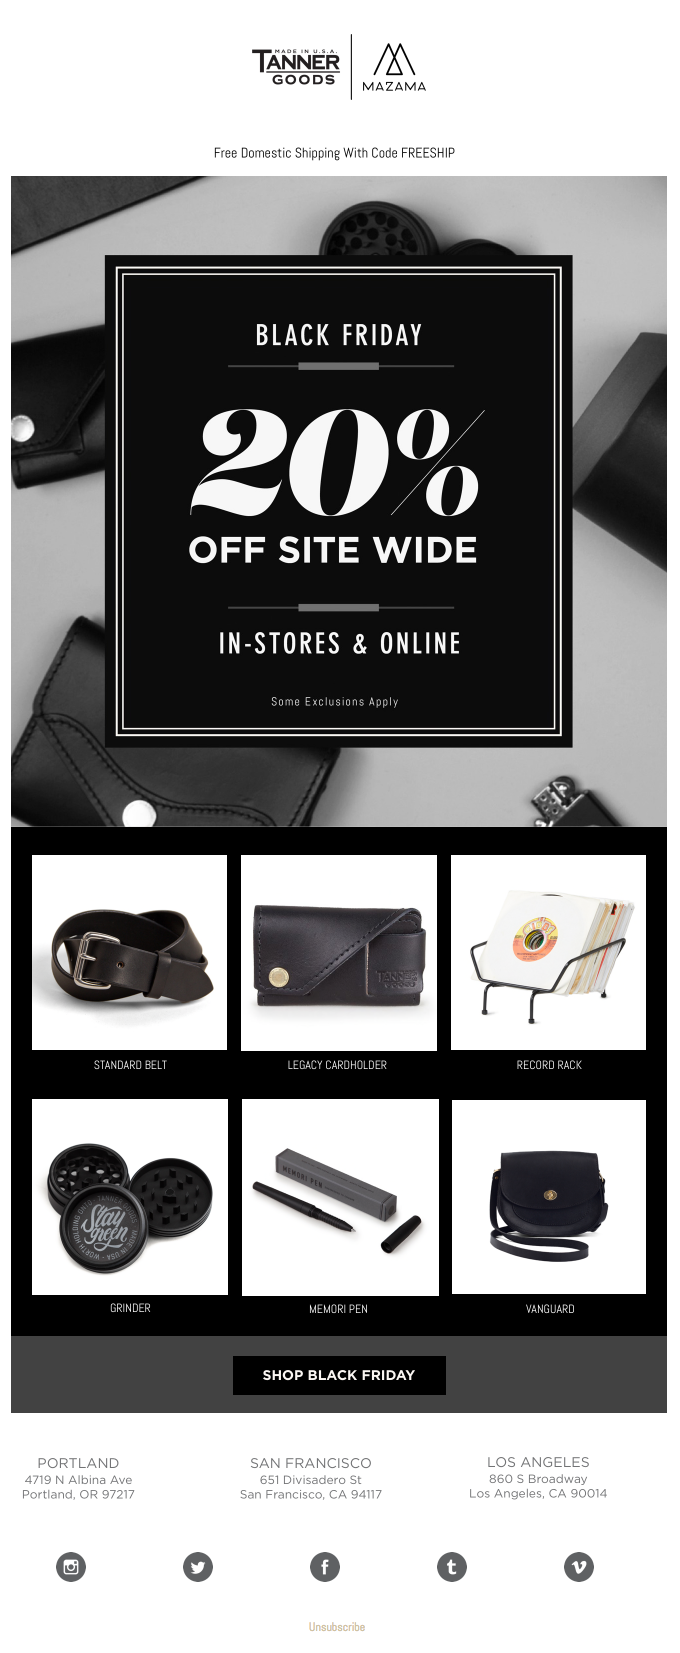 Today's the day. 20% off site-wide!